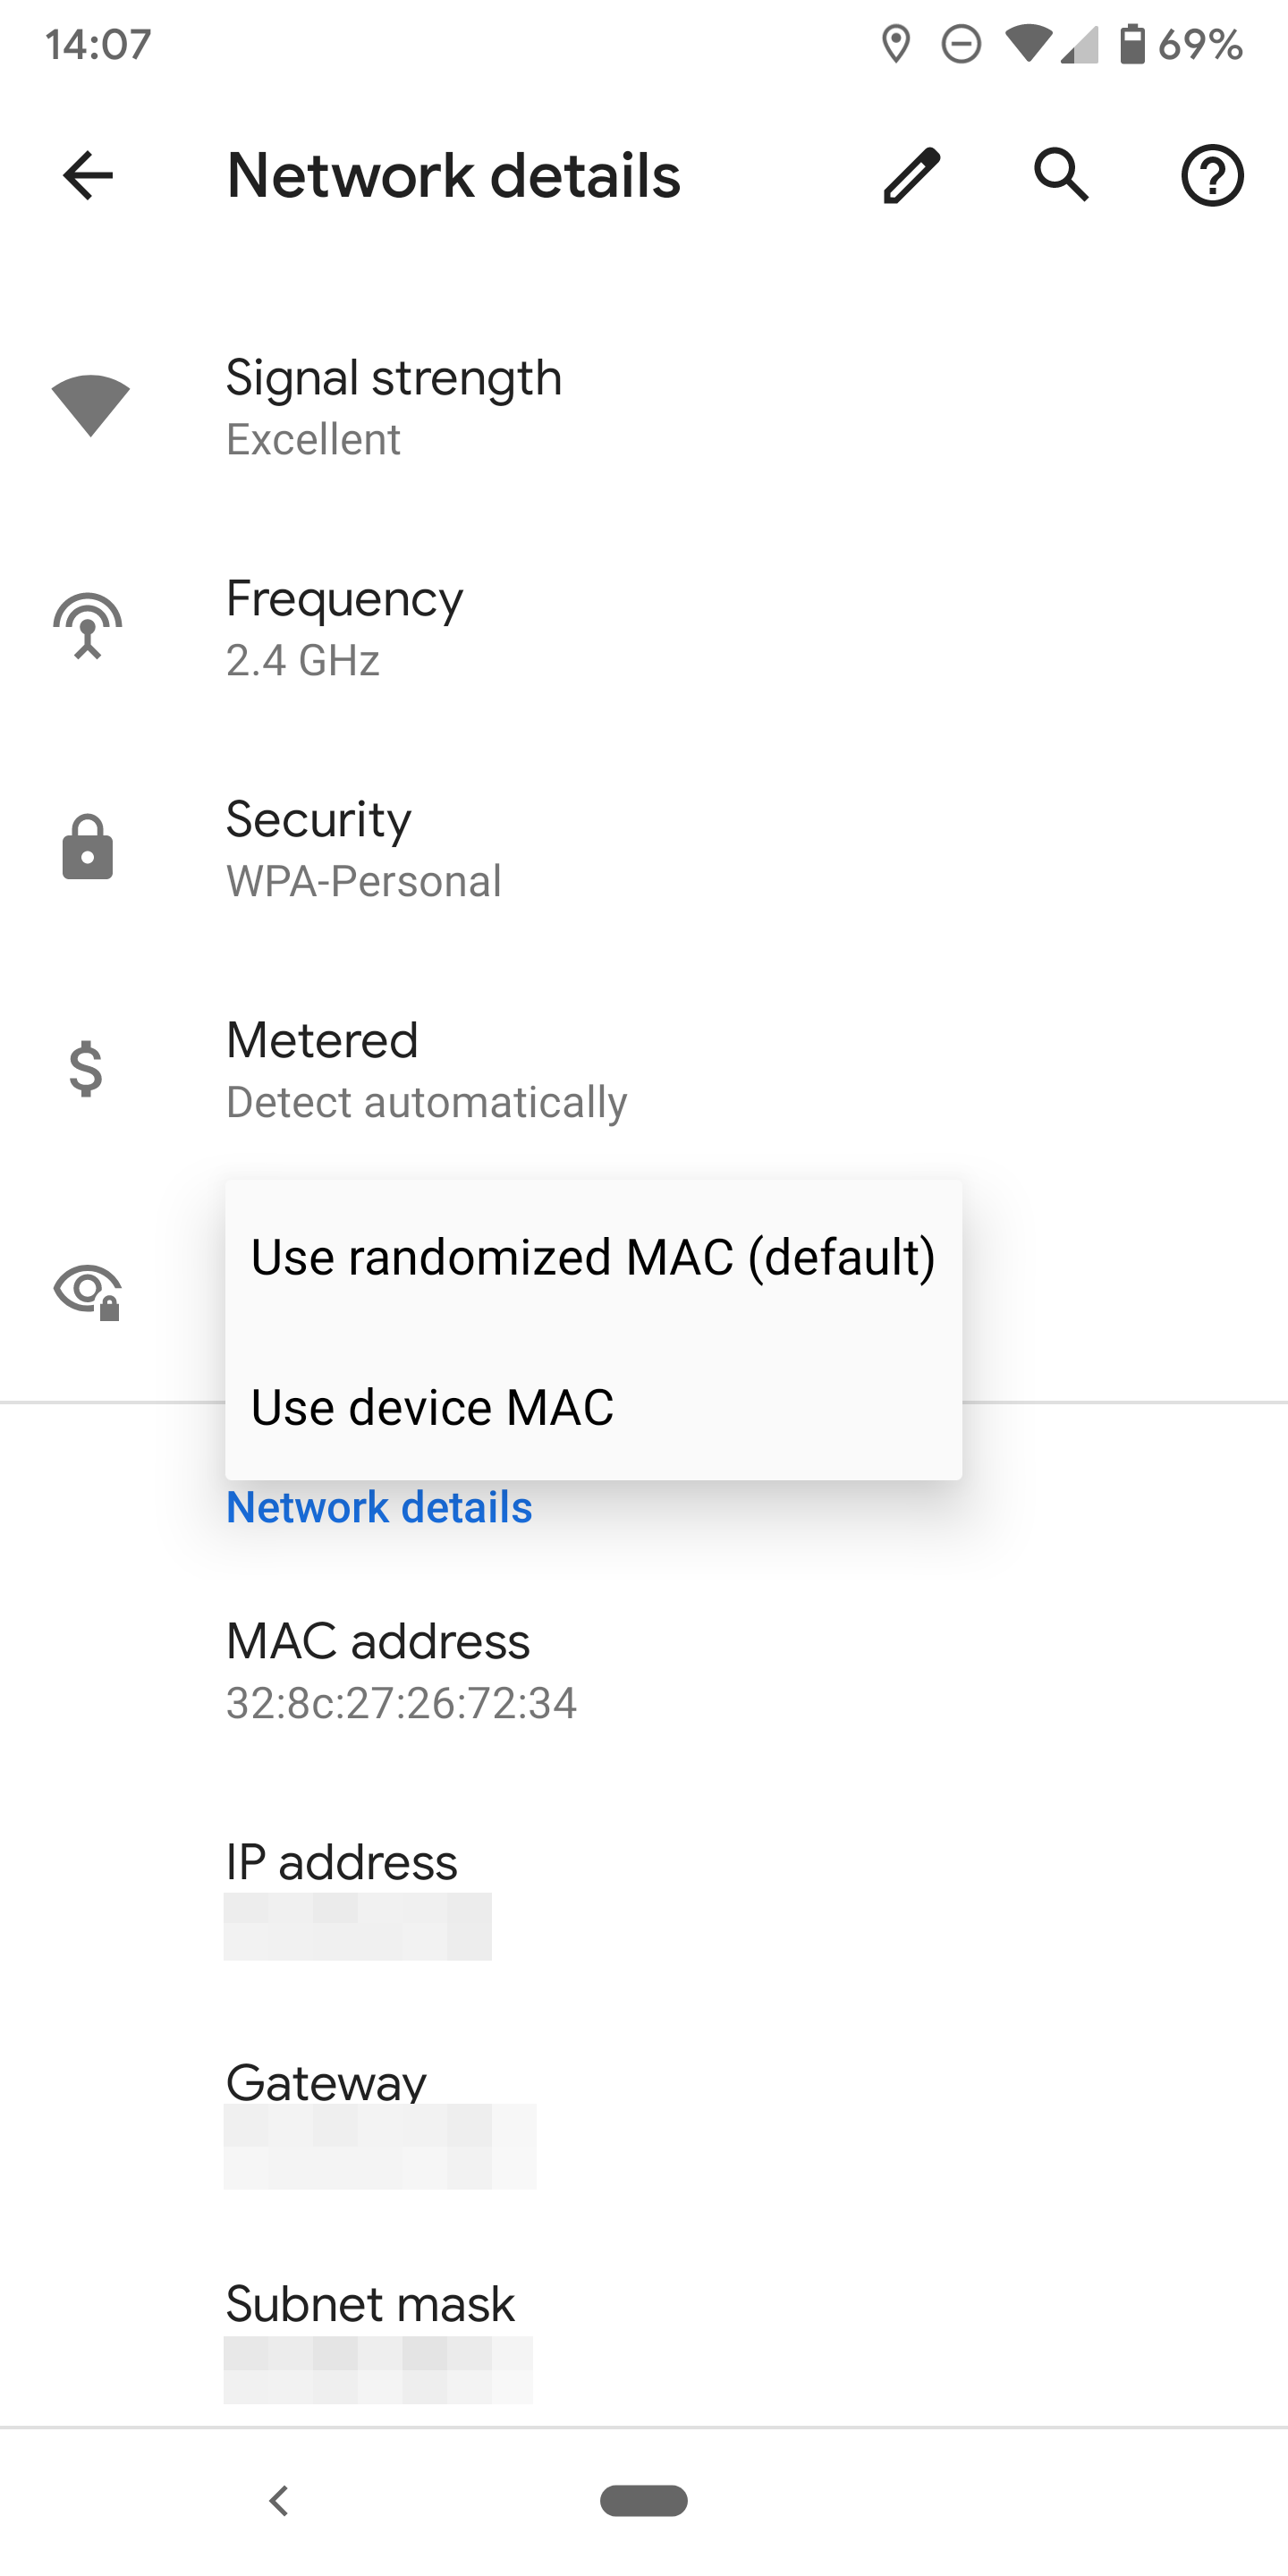 Android Q randomizes MAC addresses by default, with per